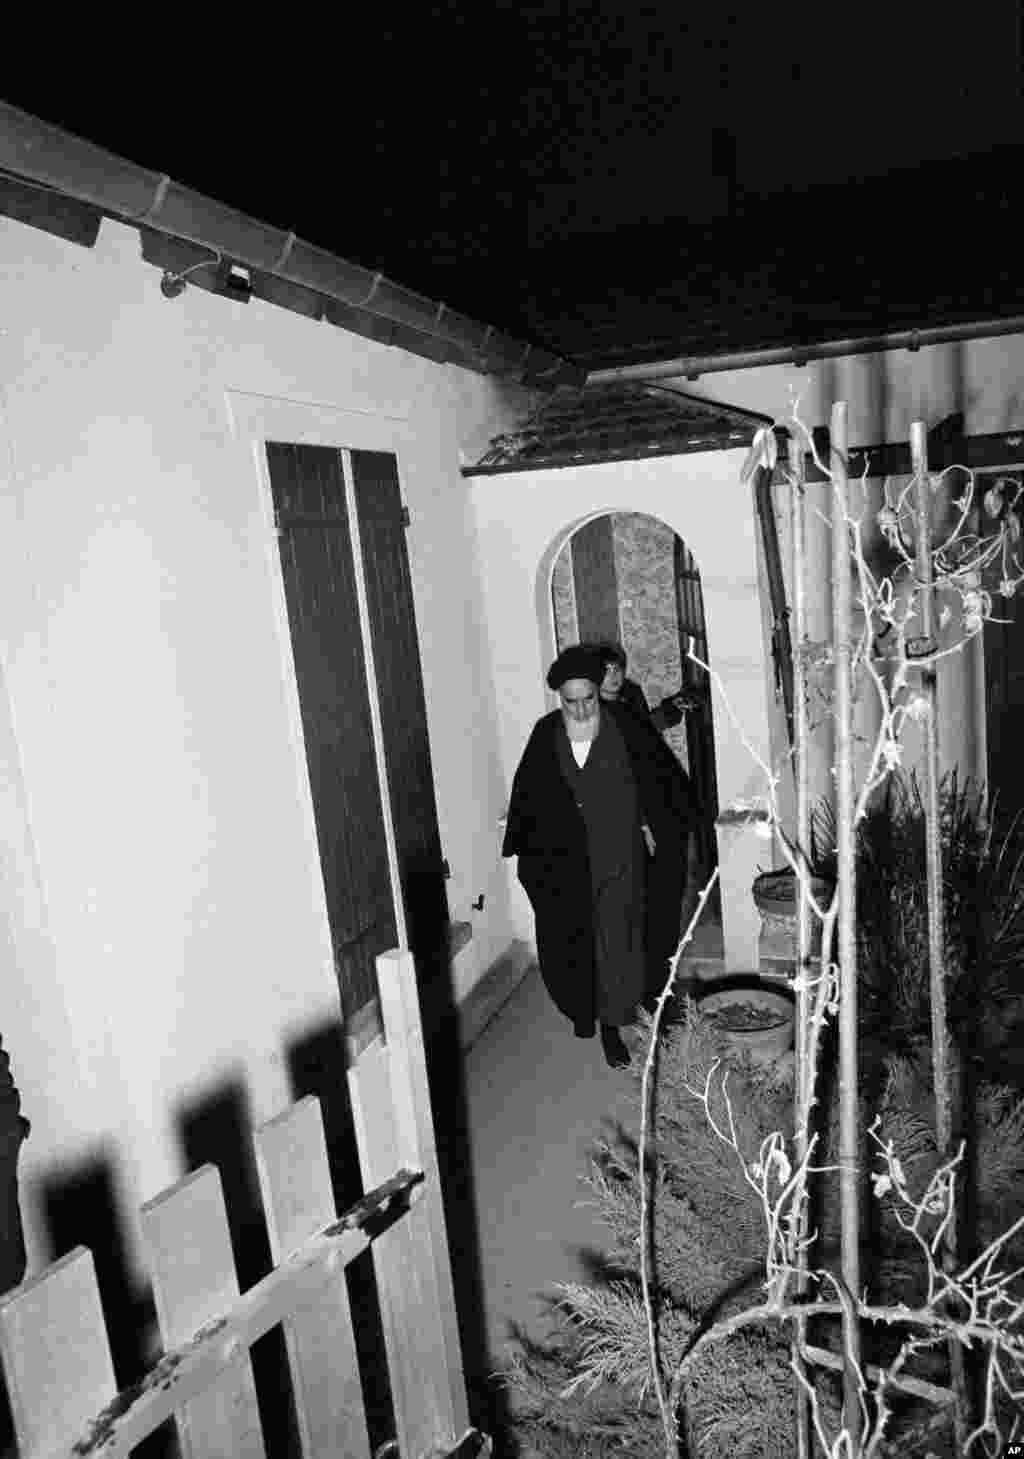 Khomeini leaves his residence in suburban Neauphle-le-Chateau for an evening prayer, just hours before leaving for Charles de Gaulle Airport in Paris on January 31, 1979.